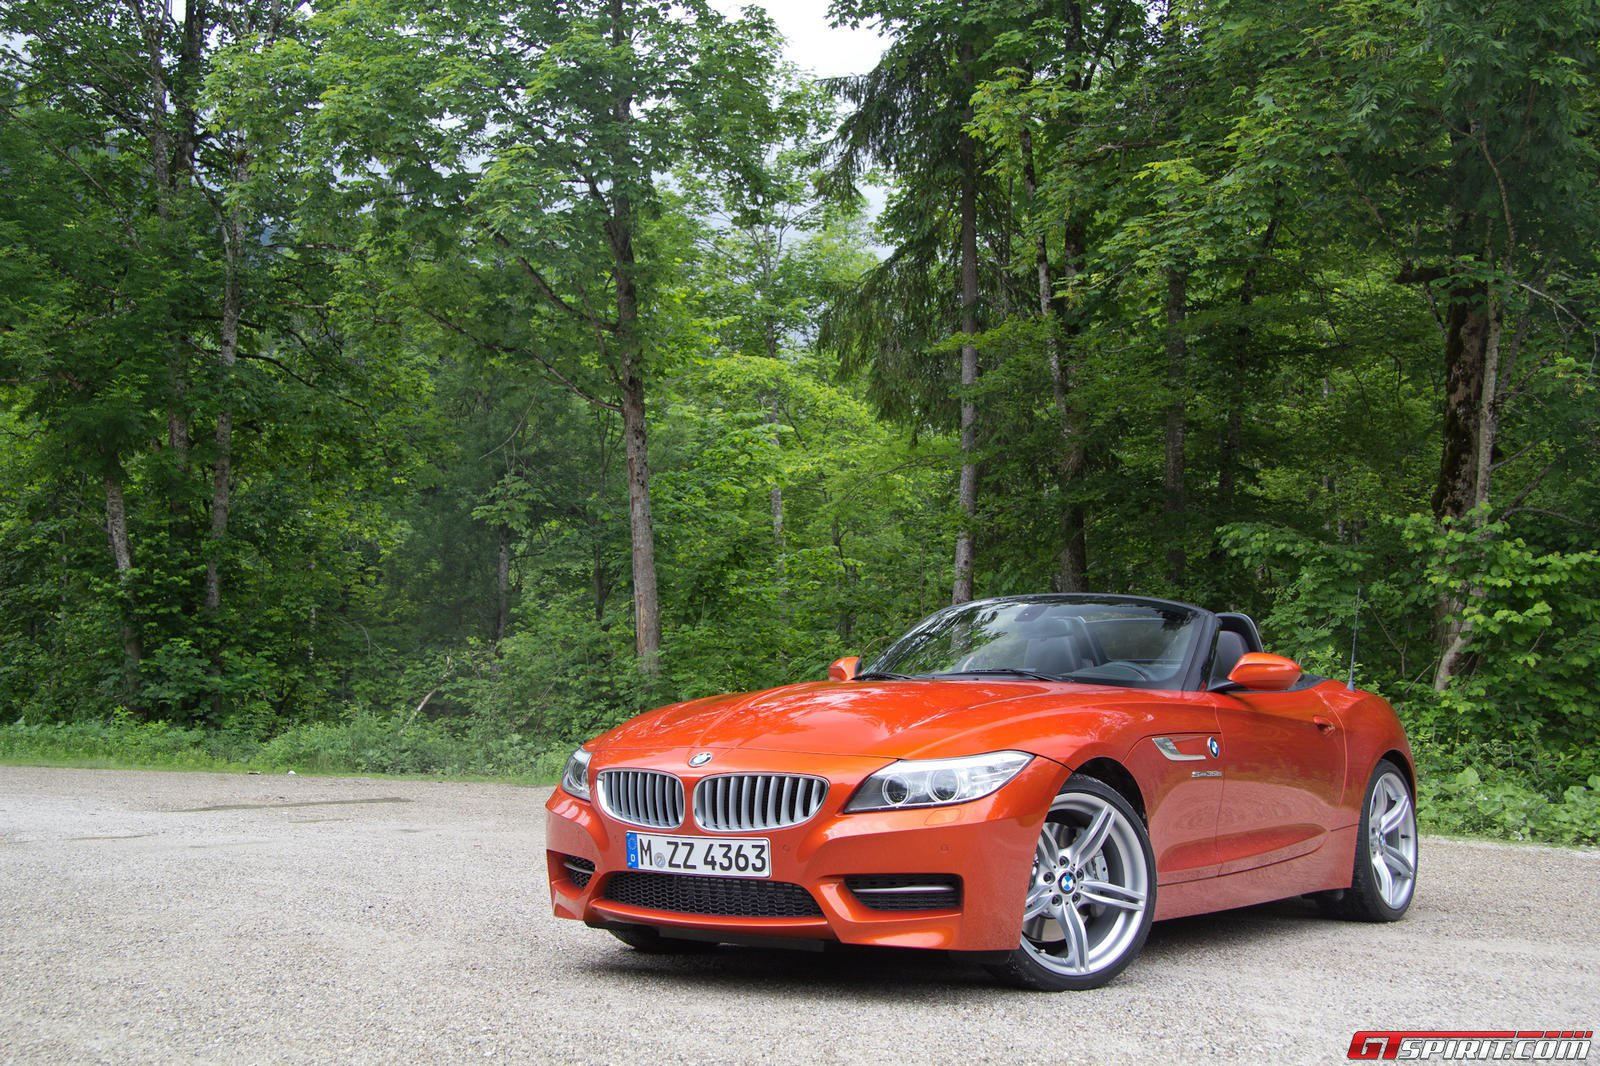 Bmw Z4 Vs Porsche Boxster 2012 Bmw Z4 Sdrive35is Vs 2013 Porsche Boxster S 2012 Bmw Z4